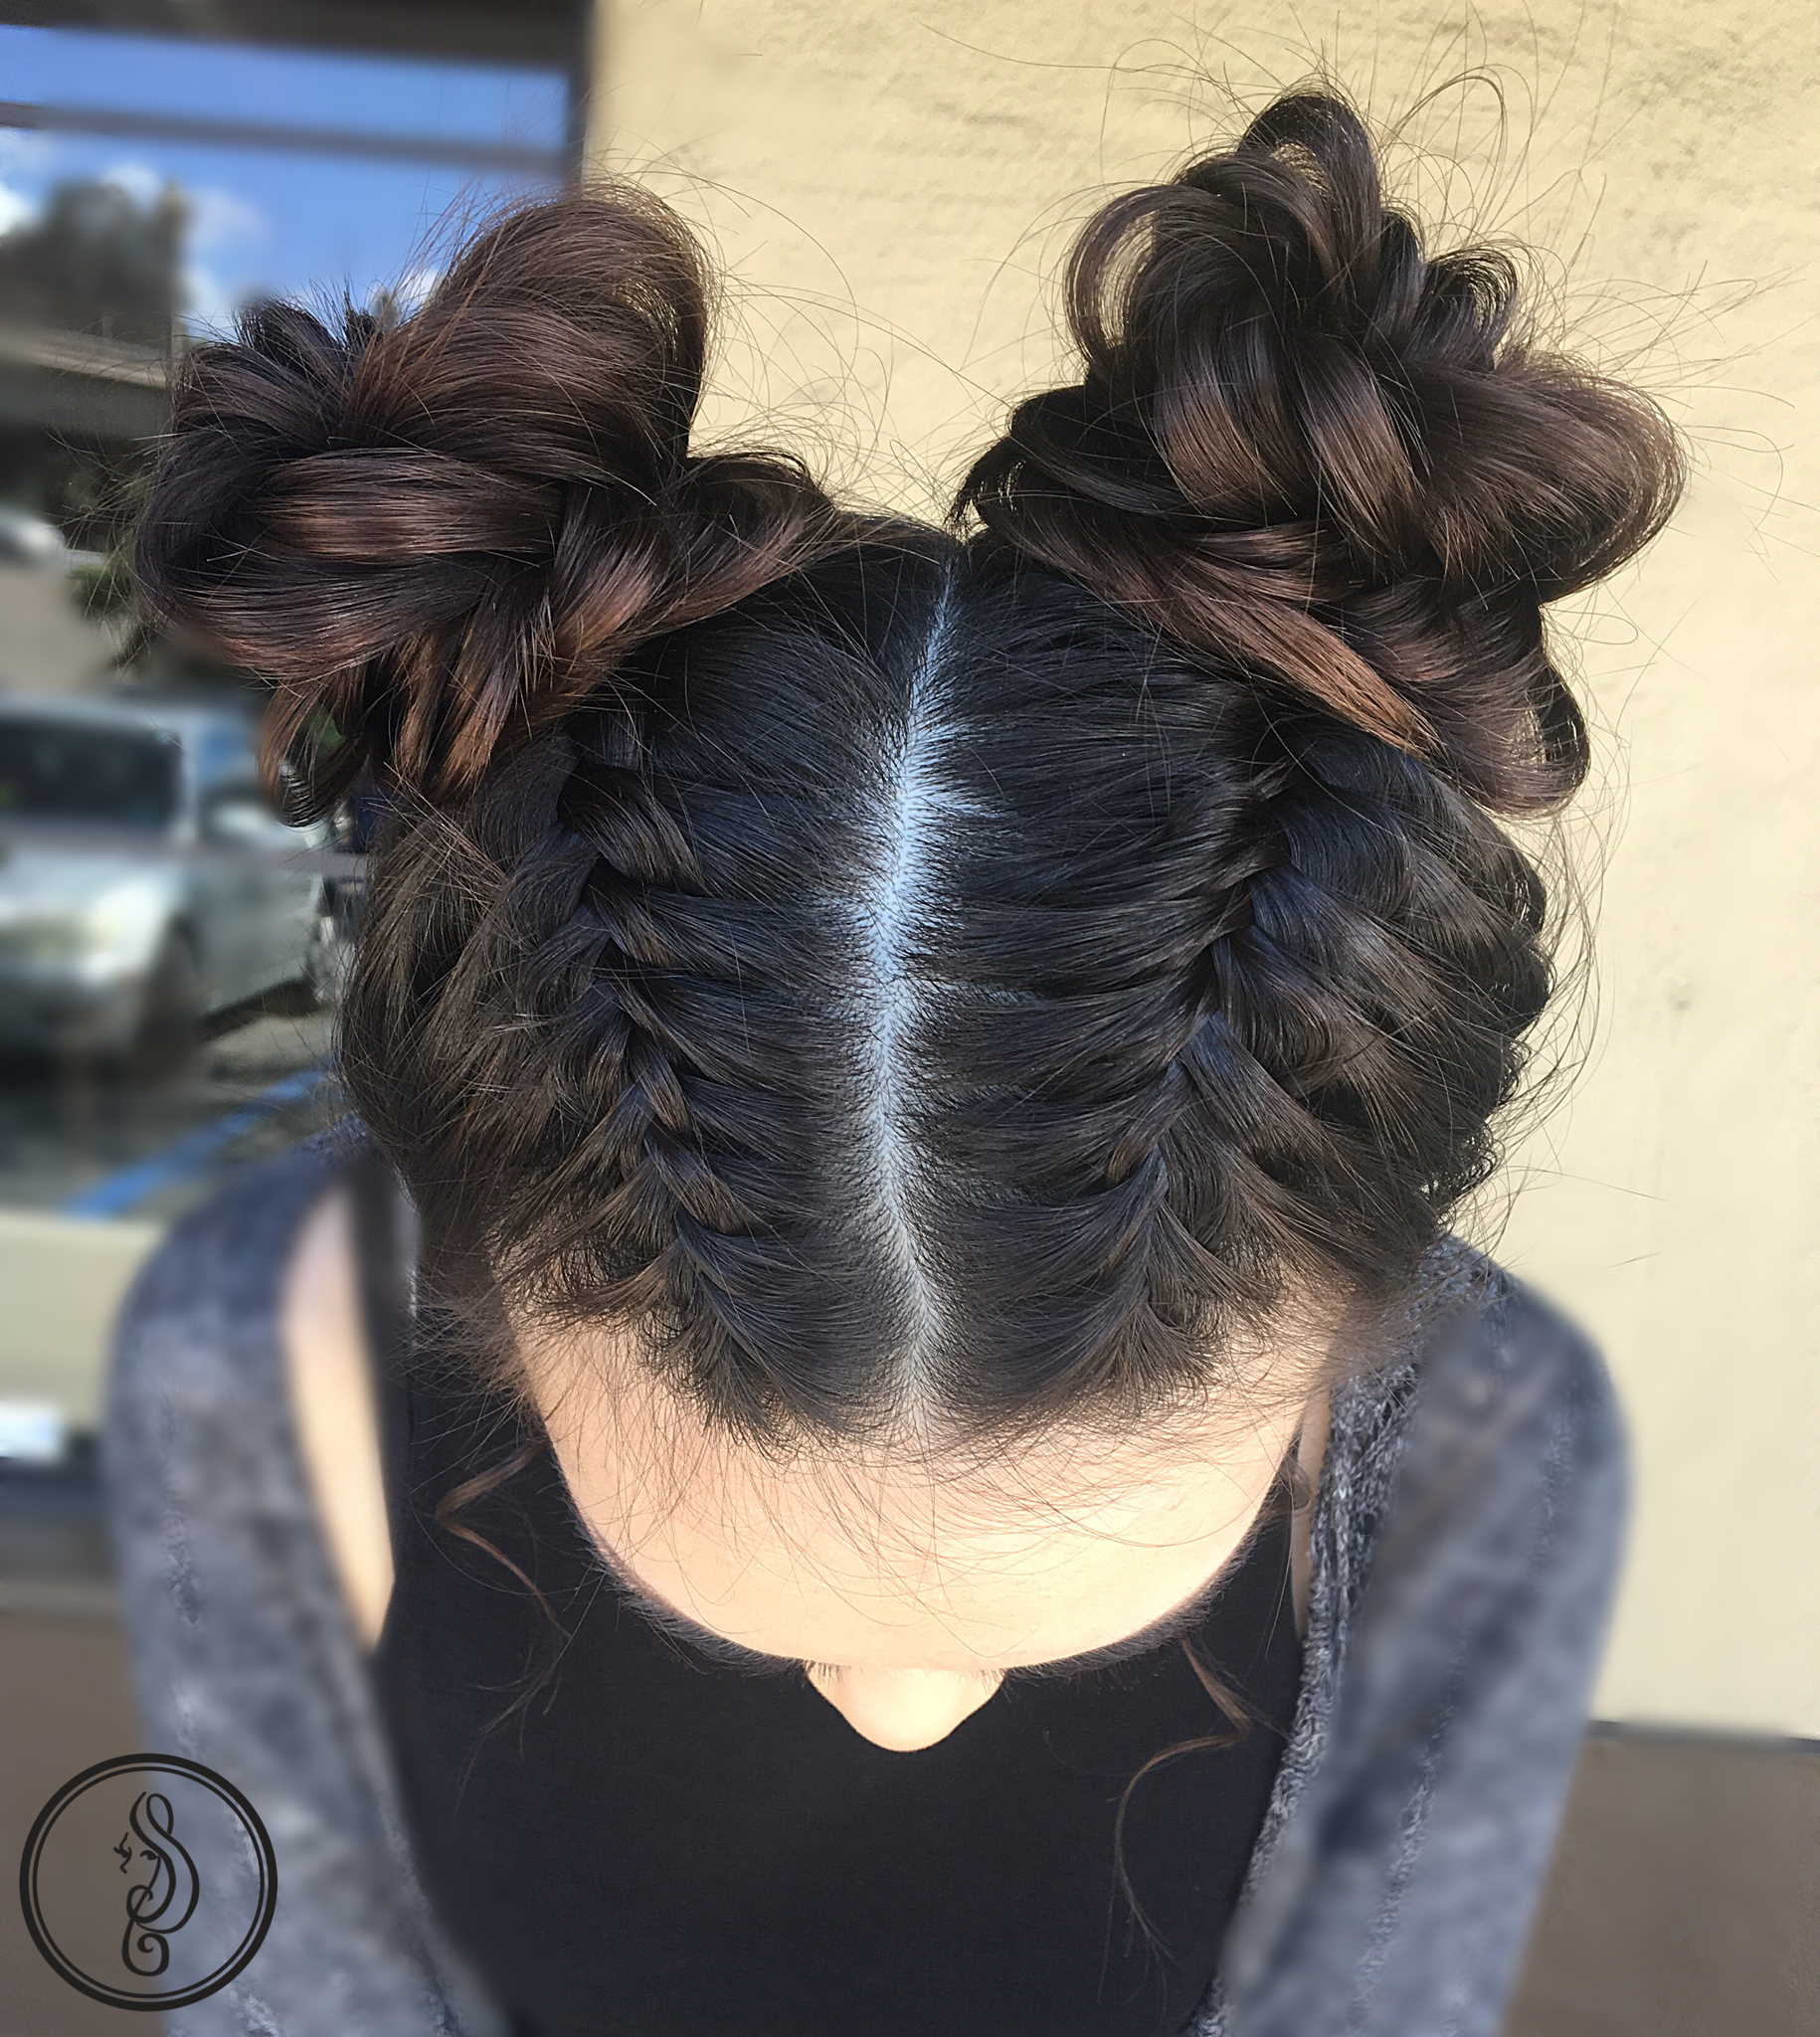 Braids And Space Buns! (View 4 of 20)